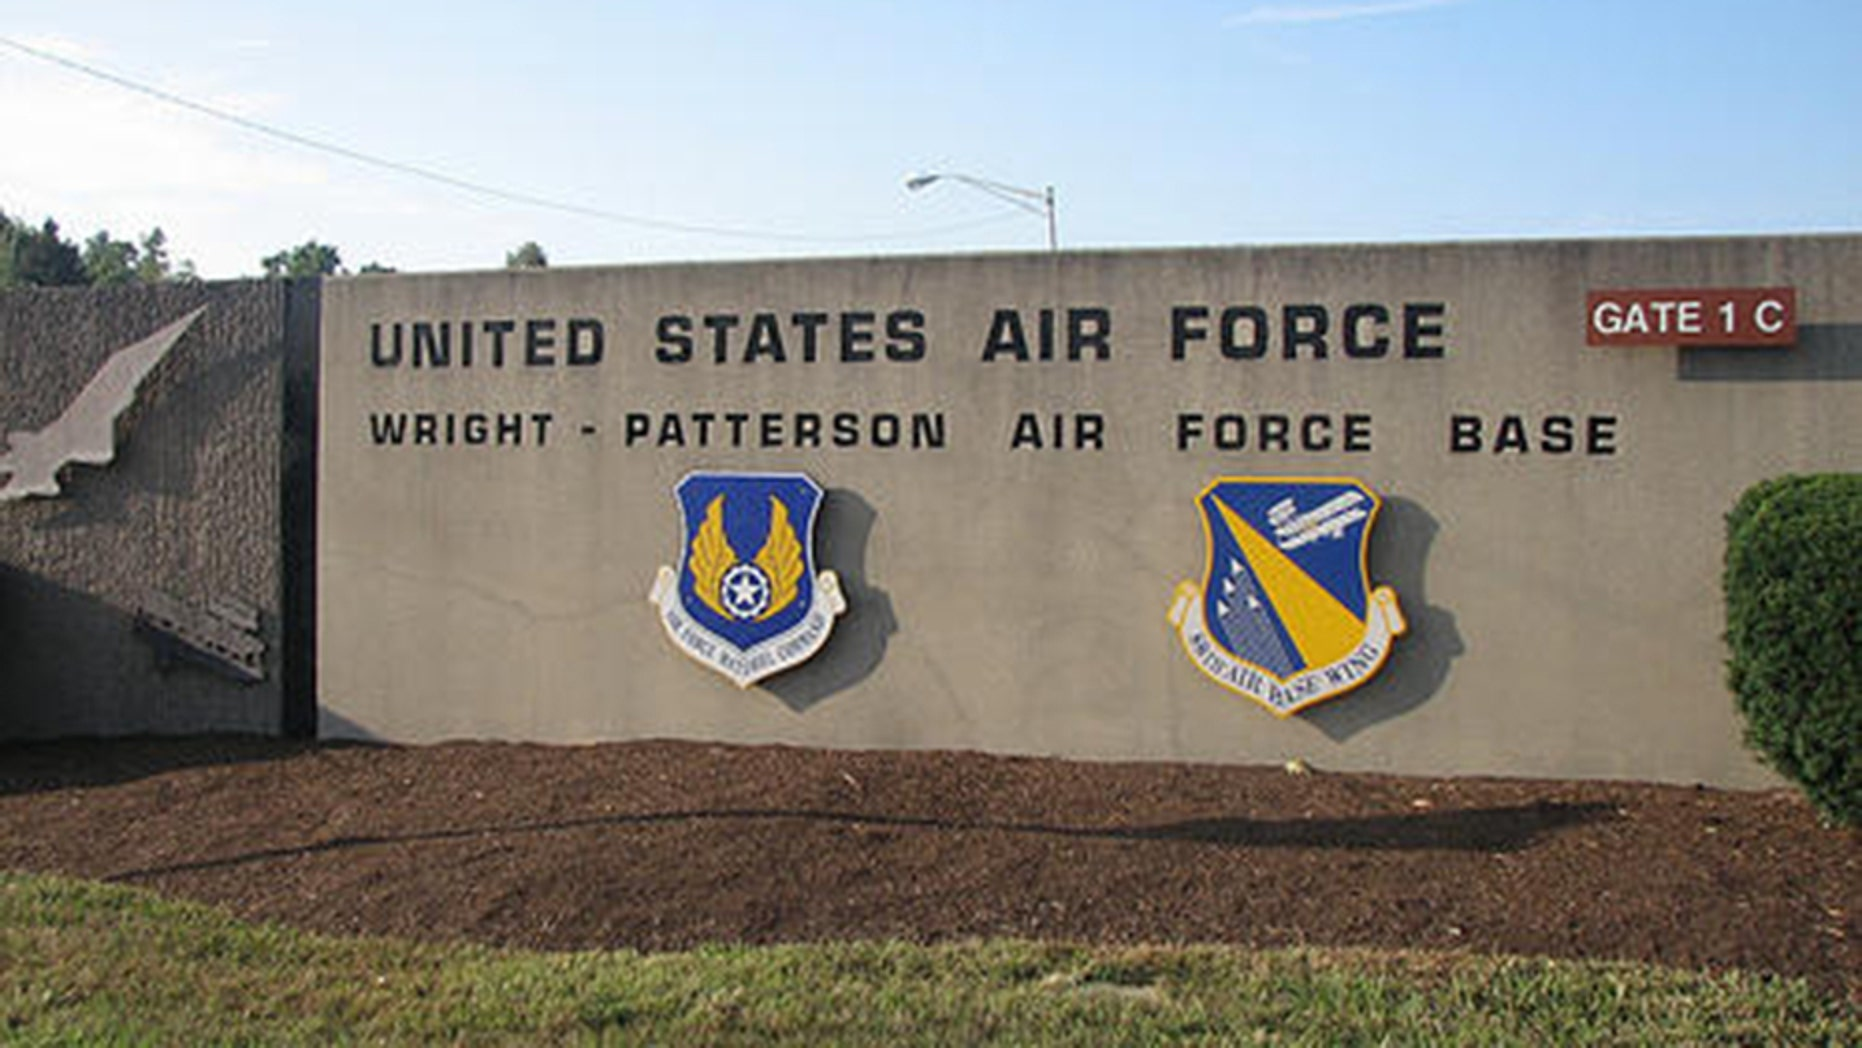 Reports of an active shooter sent emergency responders racing to the hospital at Wright-Patterson Air Force Base in Dayton, Ohio on Thursday afternoon.